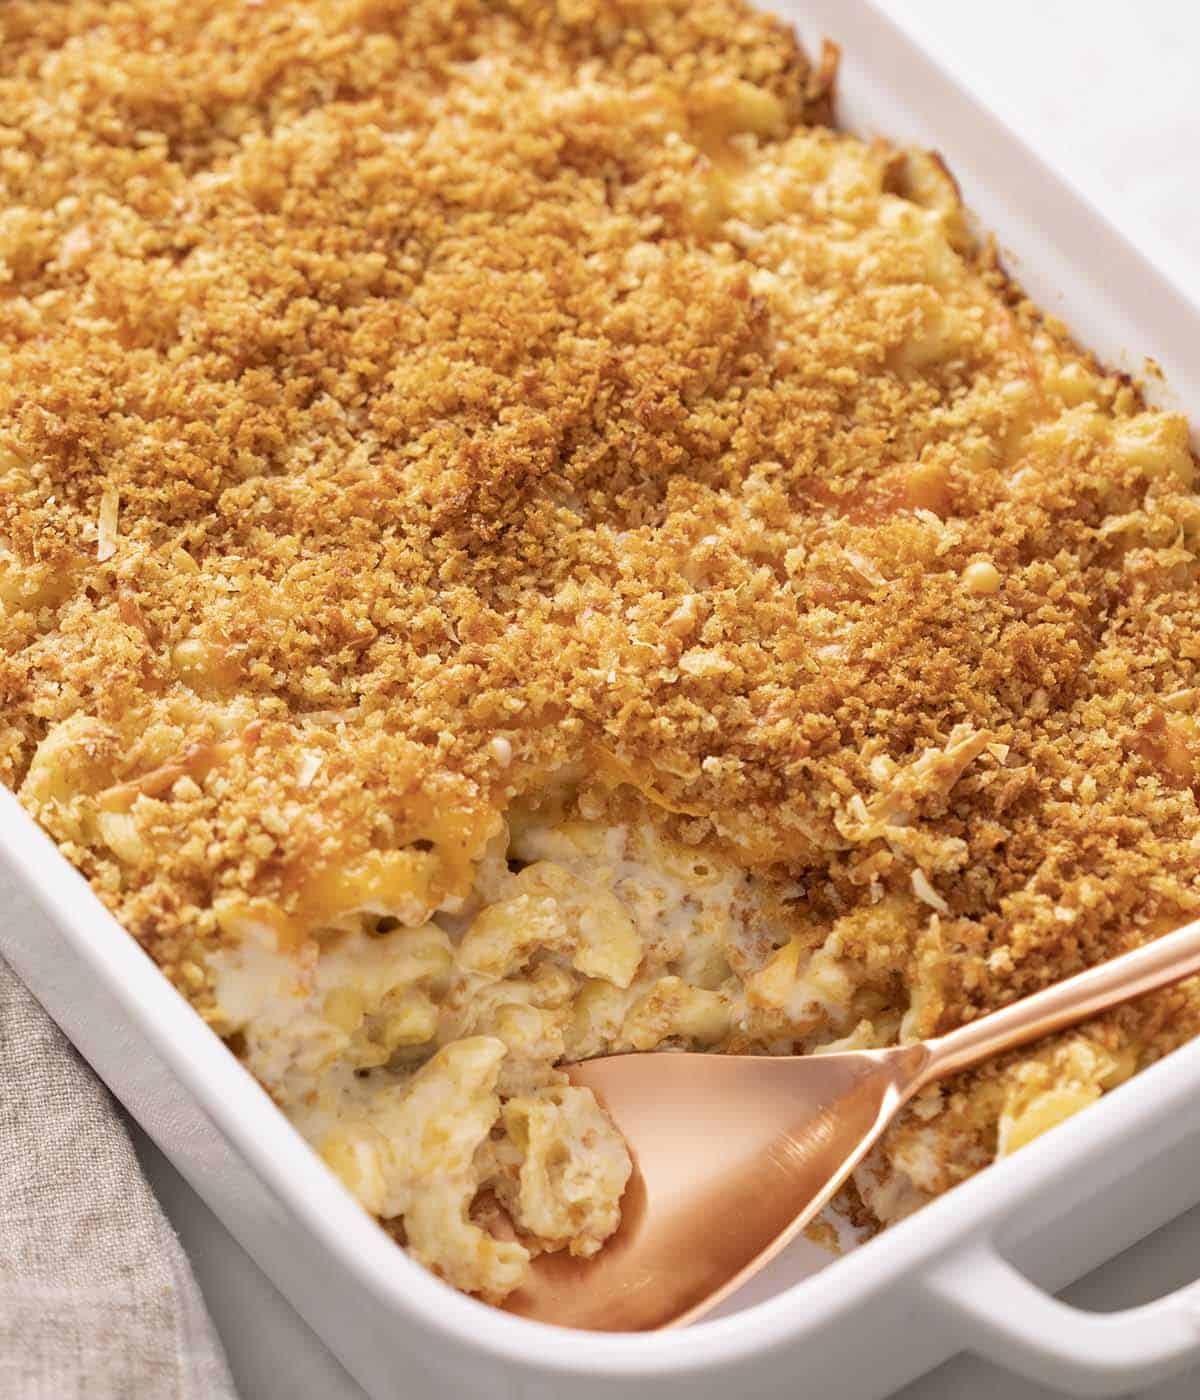 Baked Mac and Cheese in a white baking dish.